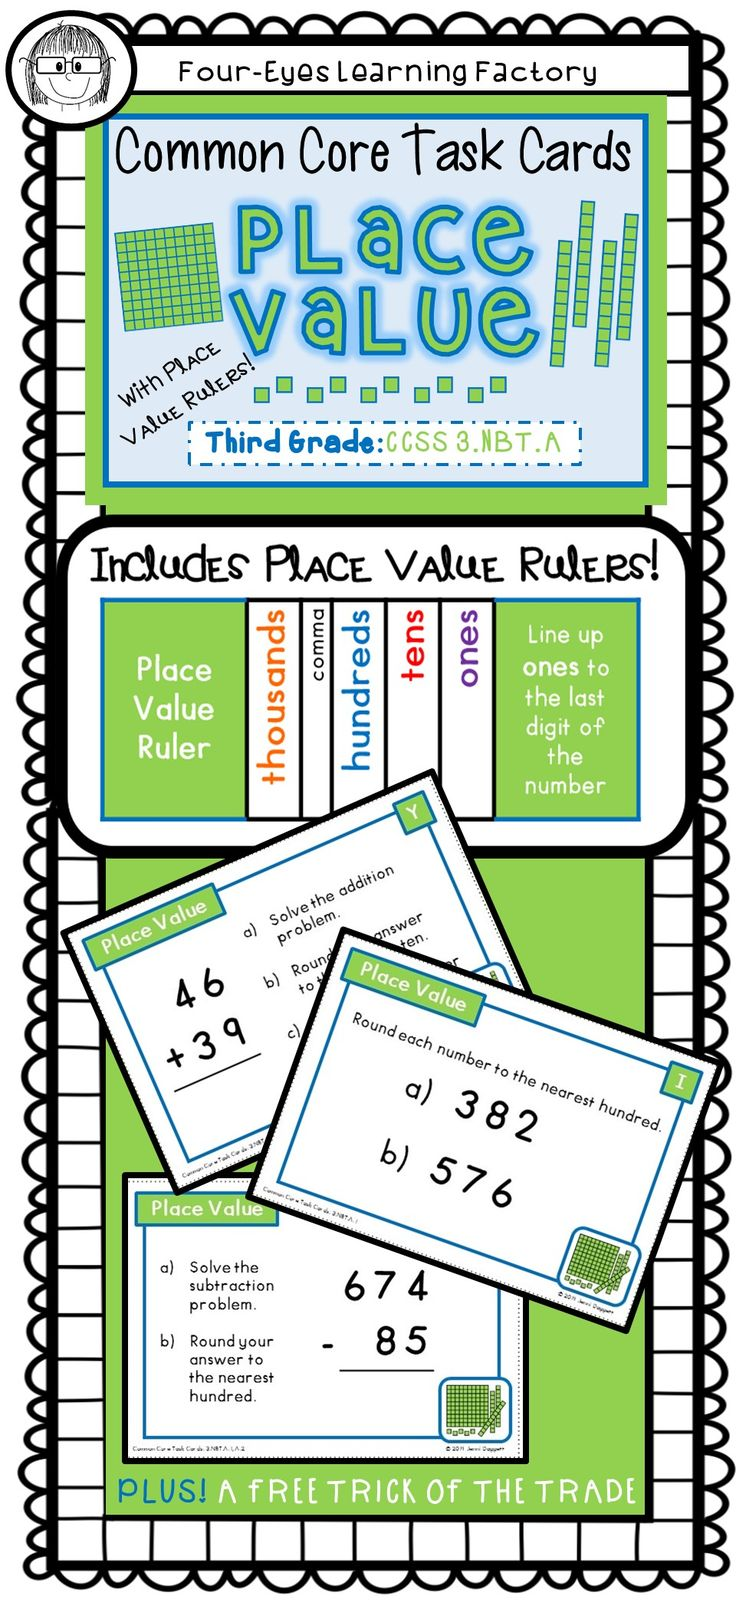 common core task cards place value third grade 3 nbt a places student and place values. Black Bedroom Furniture Sets. Home Design Ideas